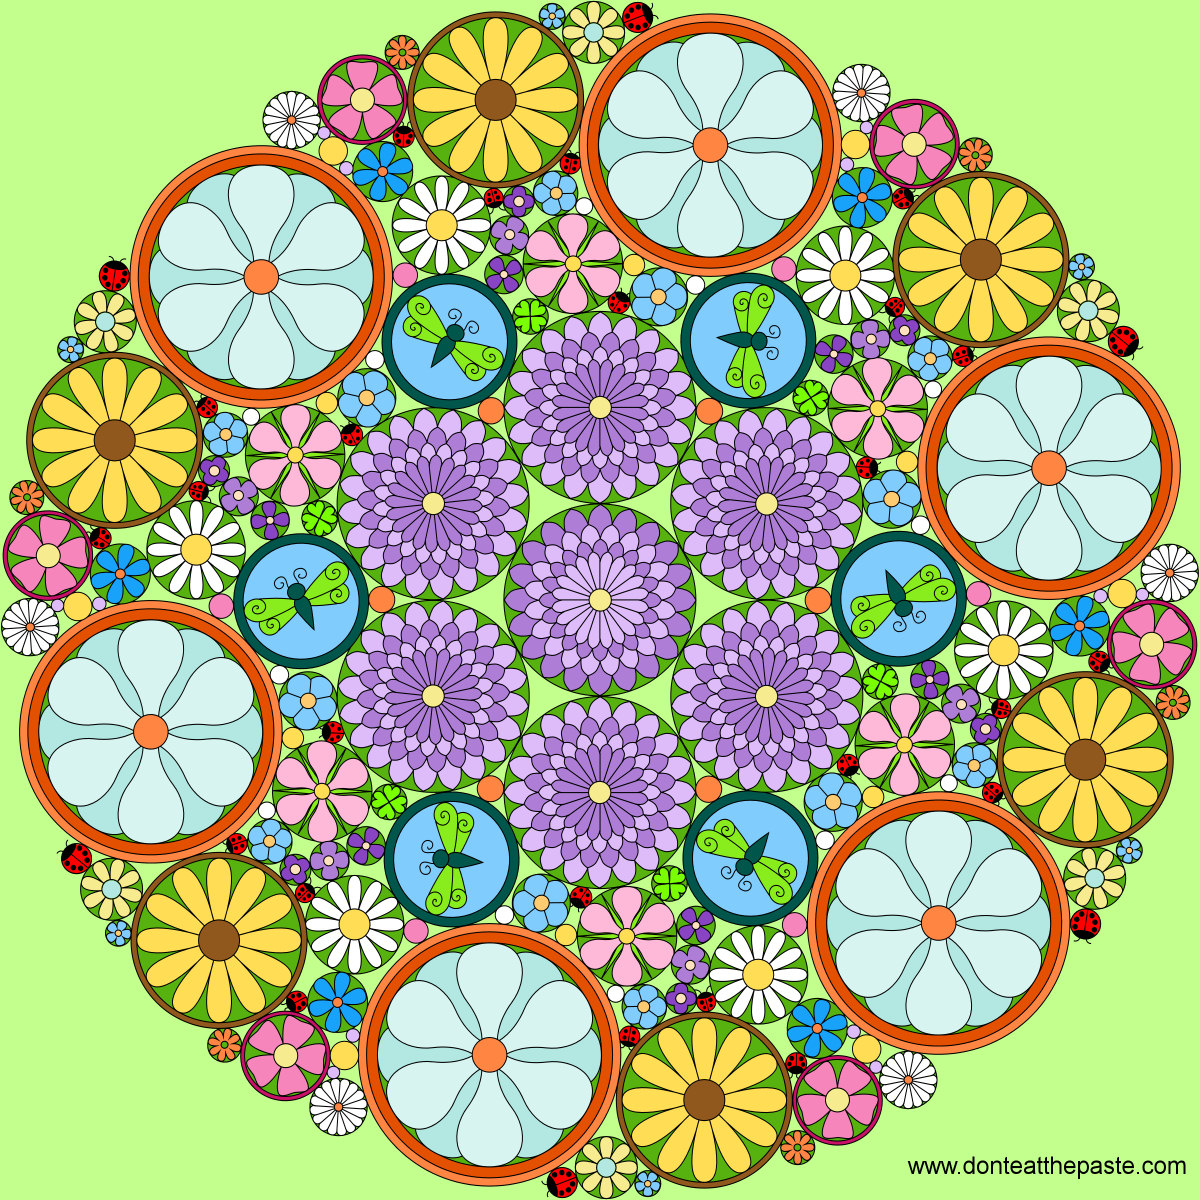 Don\'t Eat the Paste: Really intricate flower mandala to color